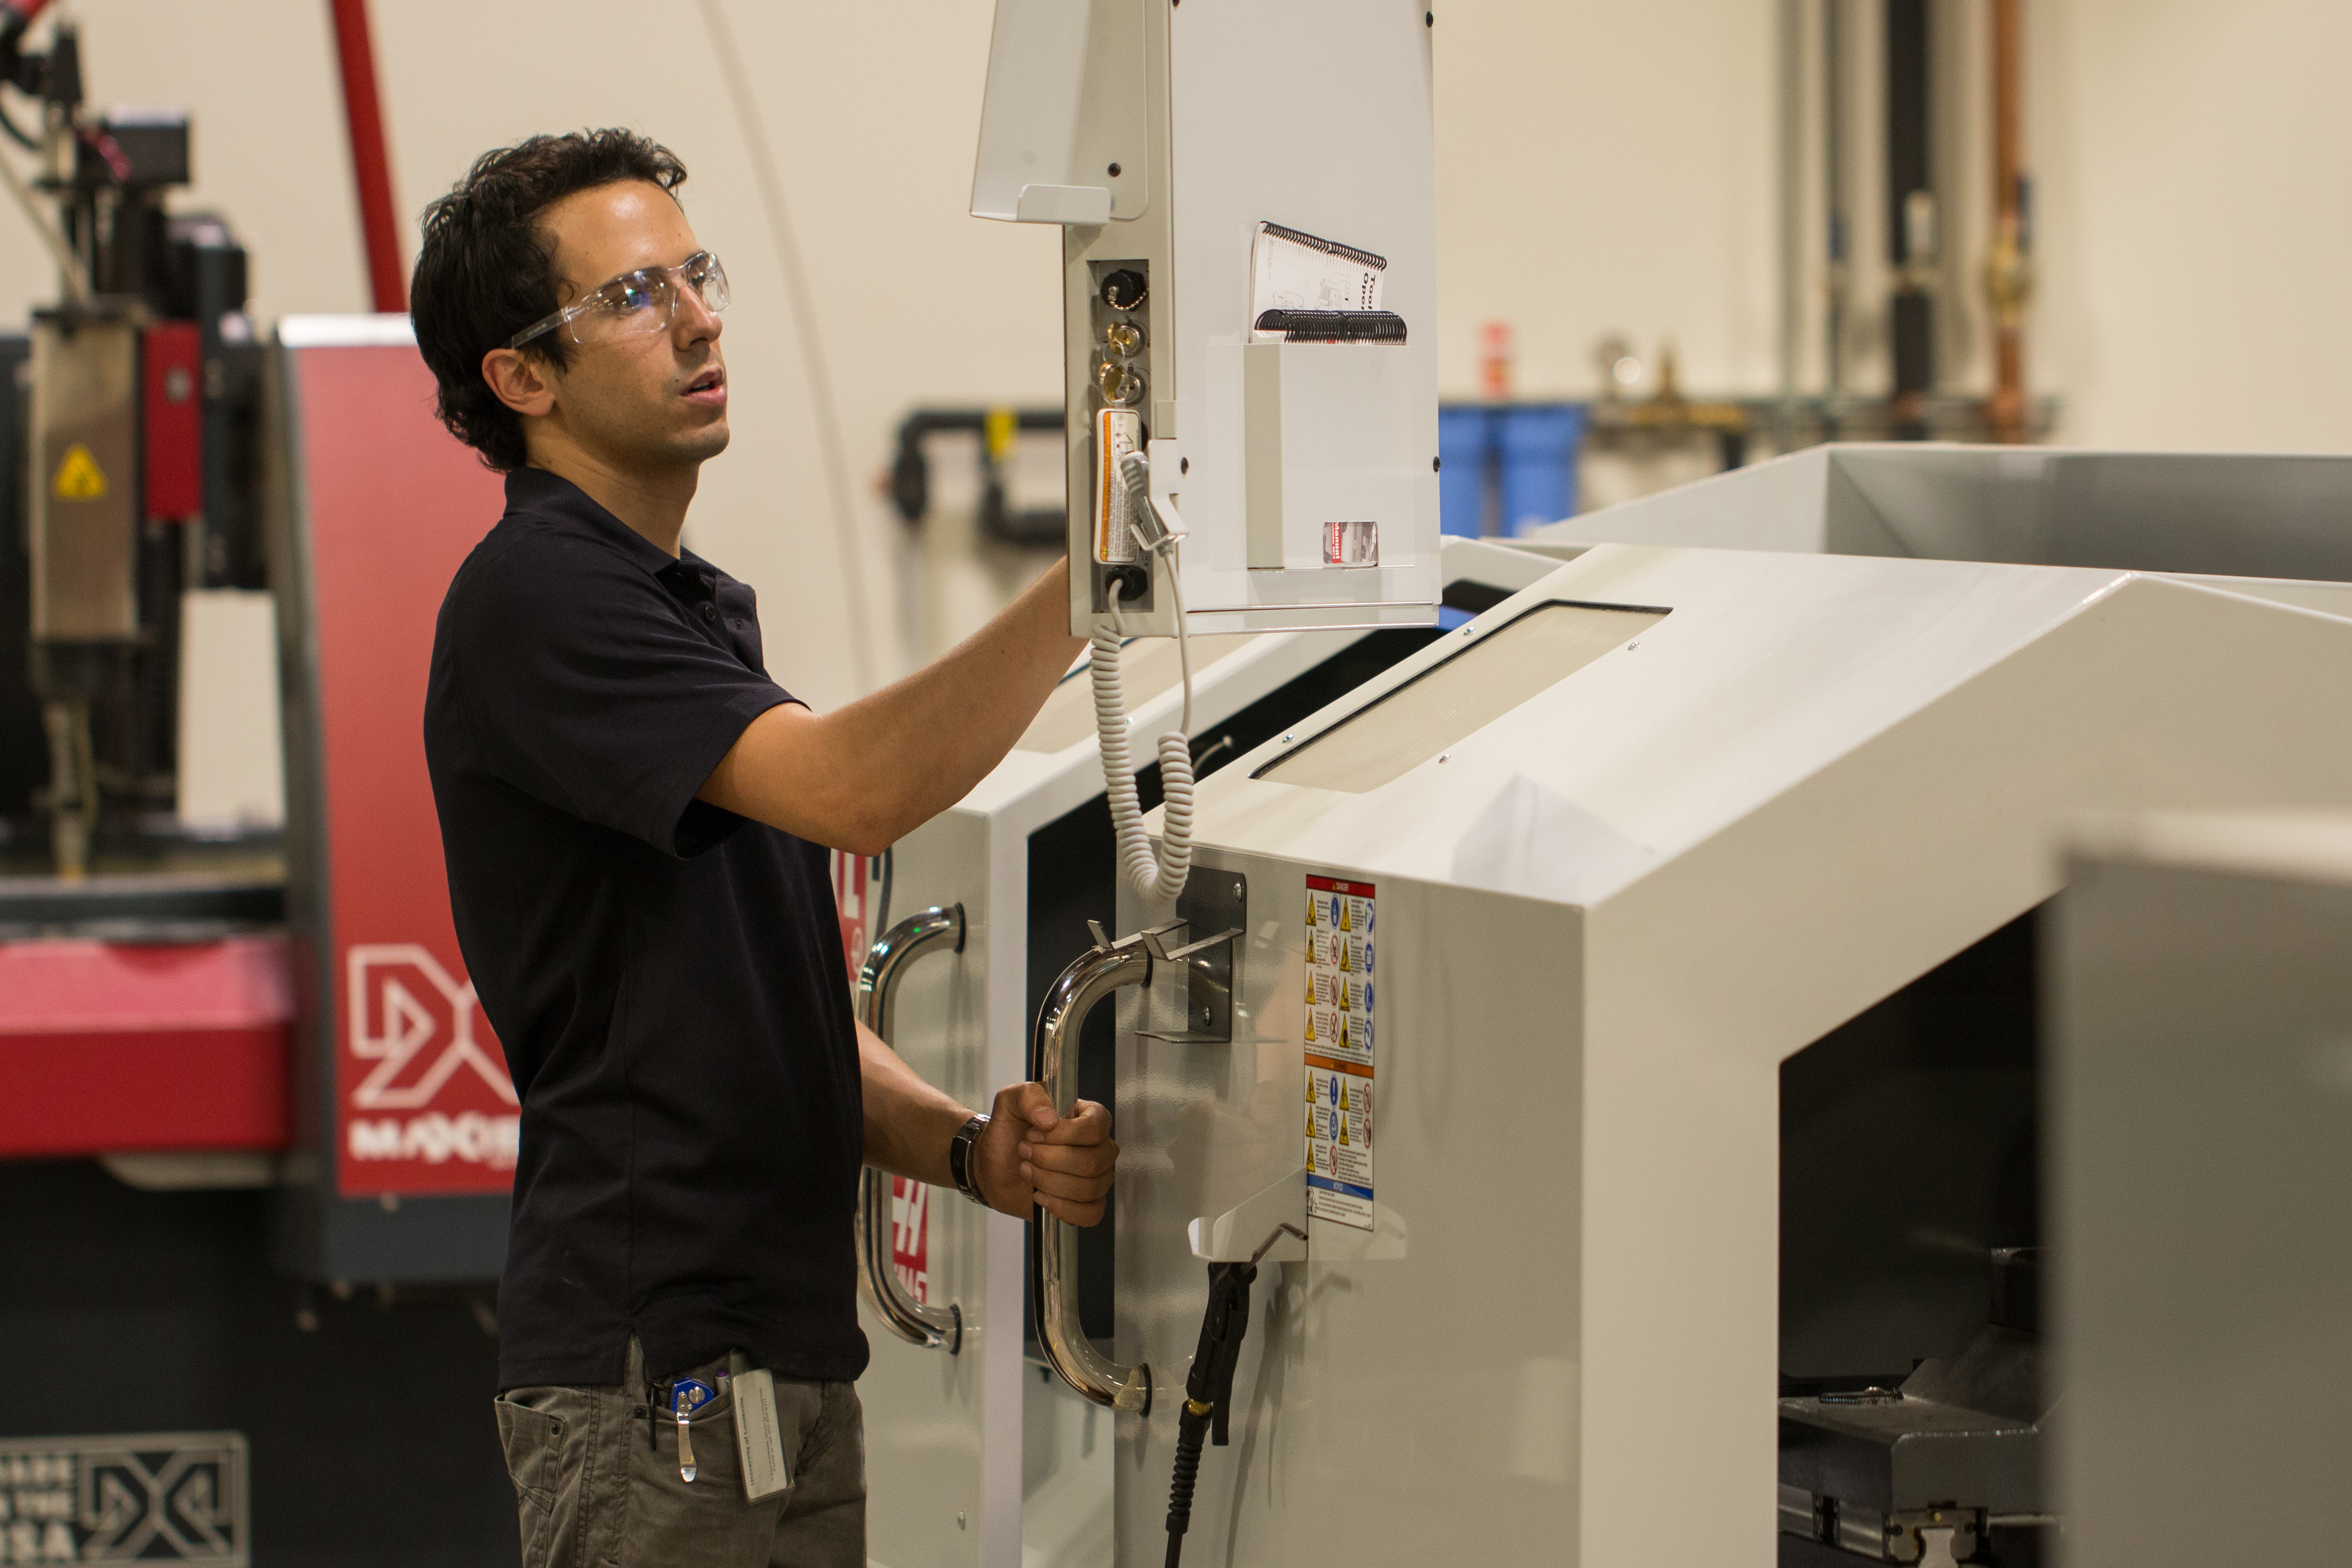 Tomas Garces, community manager, adjusts the axis on the Haas CNC Lathe in the FirstBuild lab, which offers all the tools community members need to bring their ideas to life. (Photo: GE)